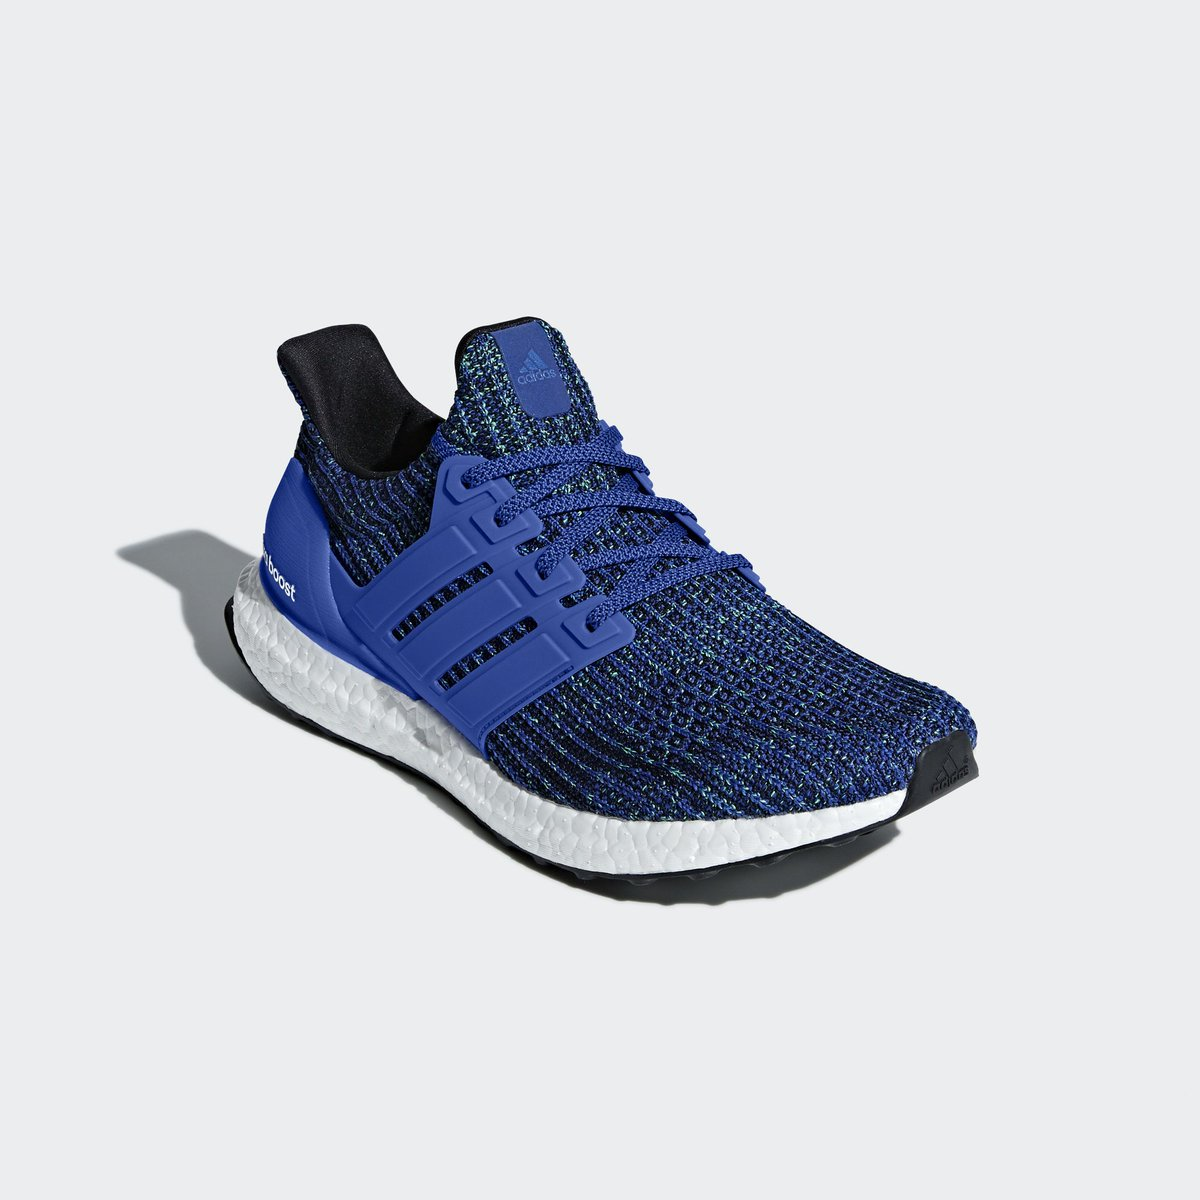 a3cb052a31ac1 ENDS TONIGHT! Under retail on  adidas US. adidas Ultra Boost 4.0 Hi-Res  Blue. Retail  180. Now  88 shipped. Use code RUNNING in cart.